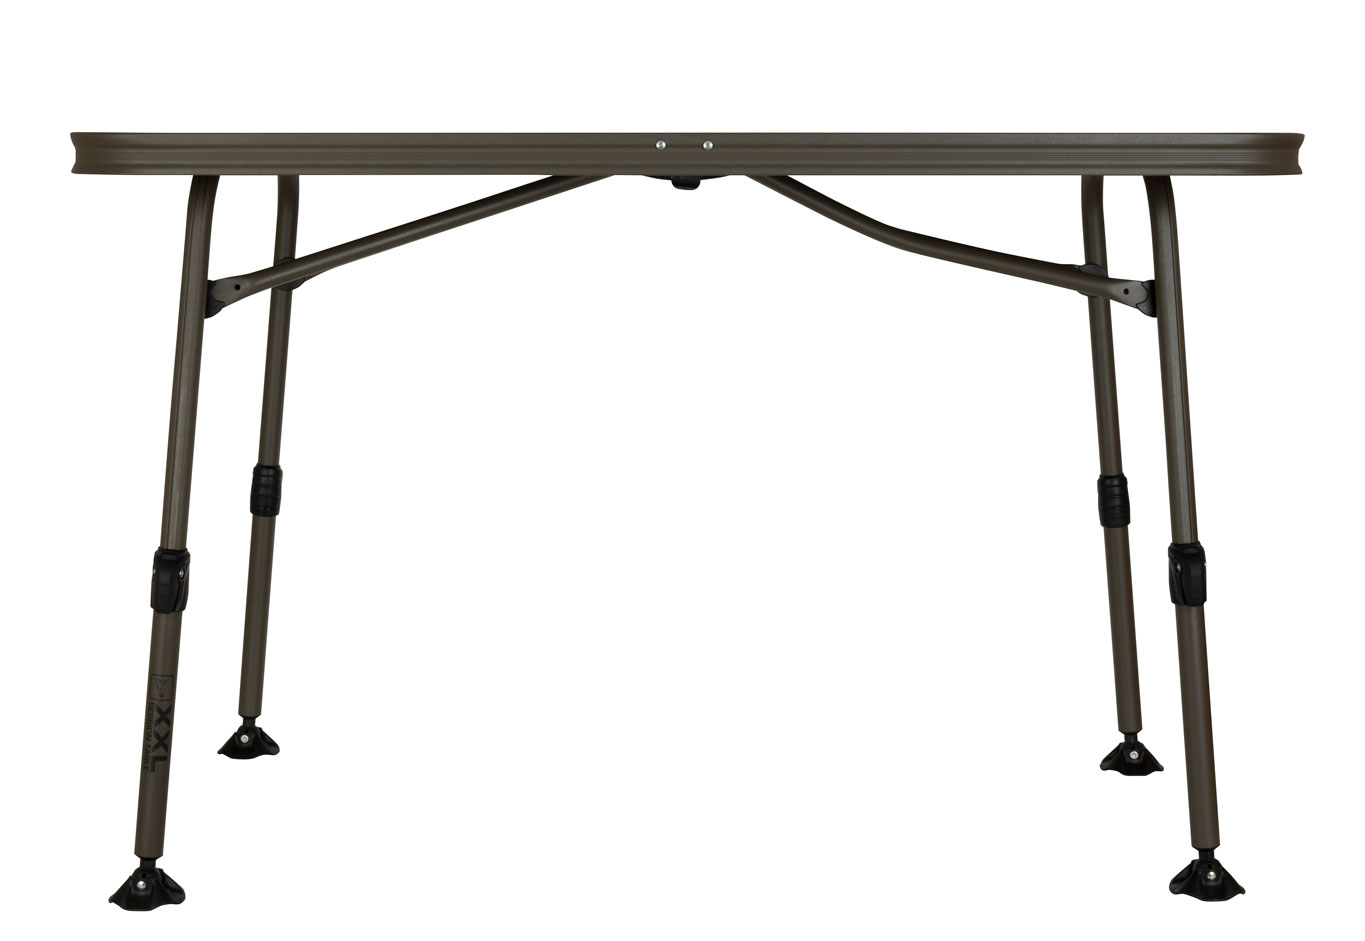 xxl-session-table_main_side-extended-legsgif